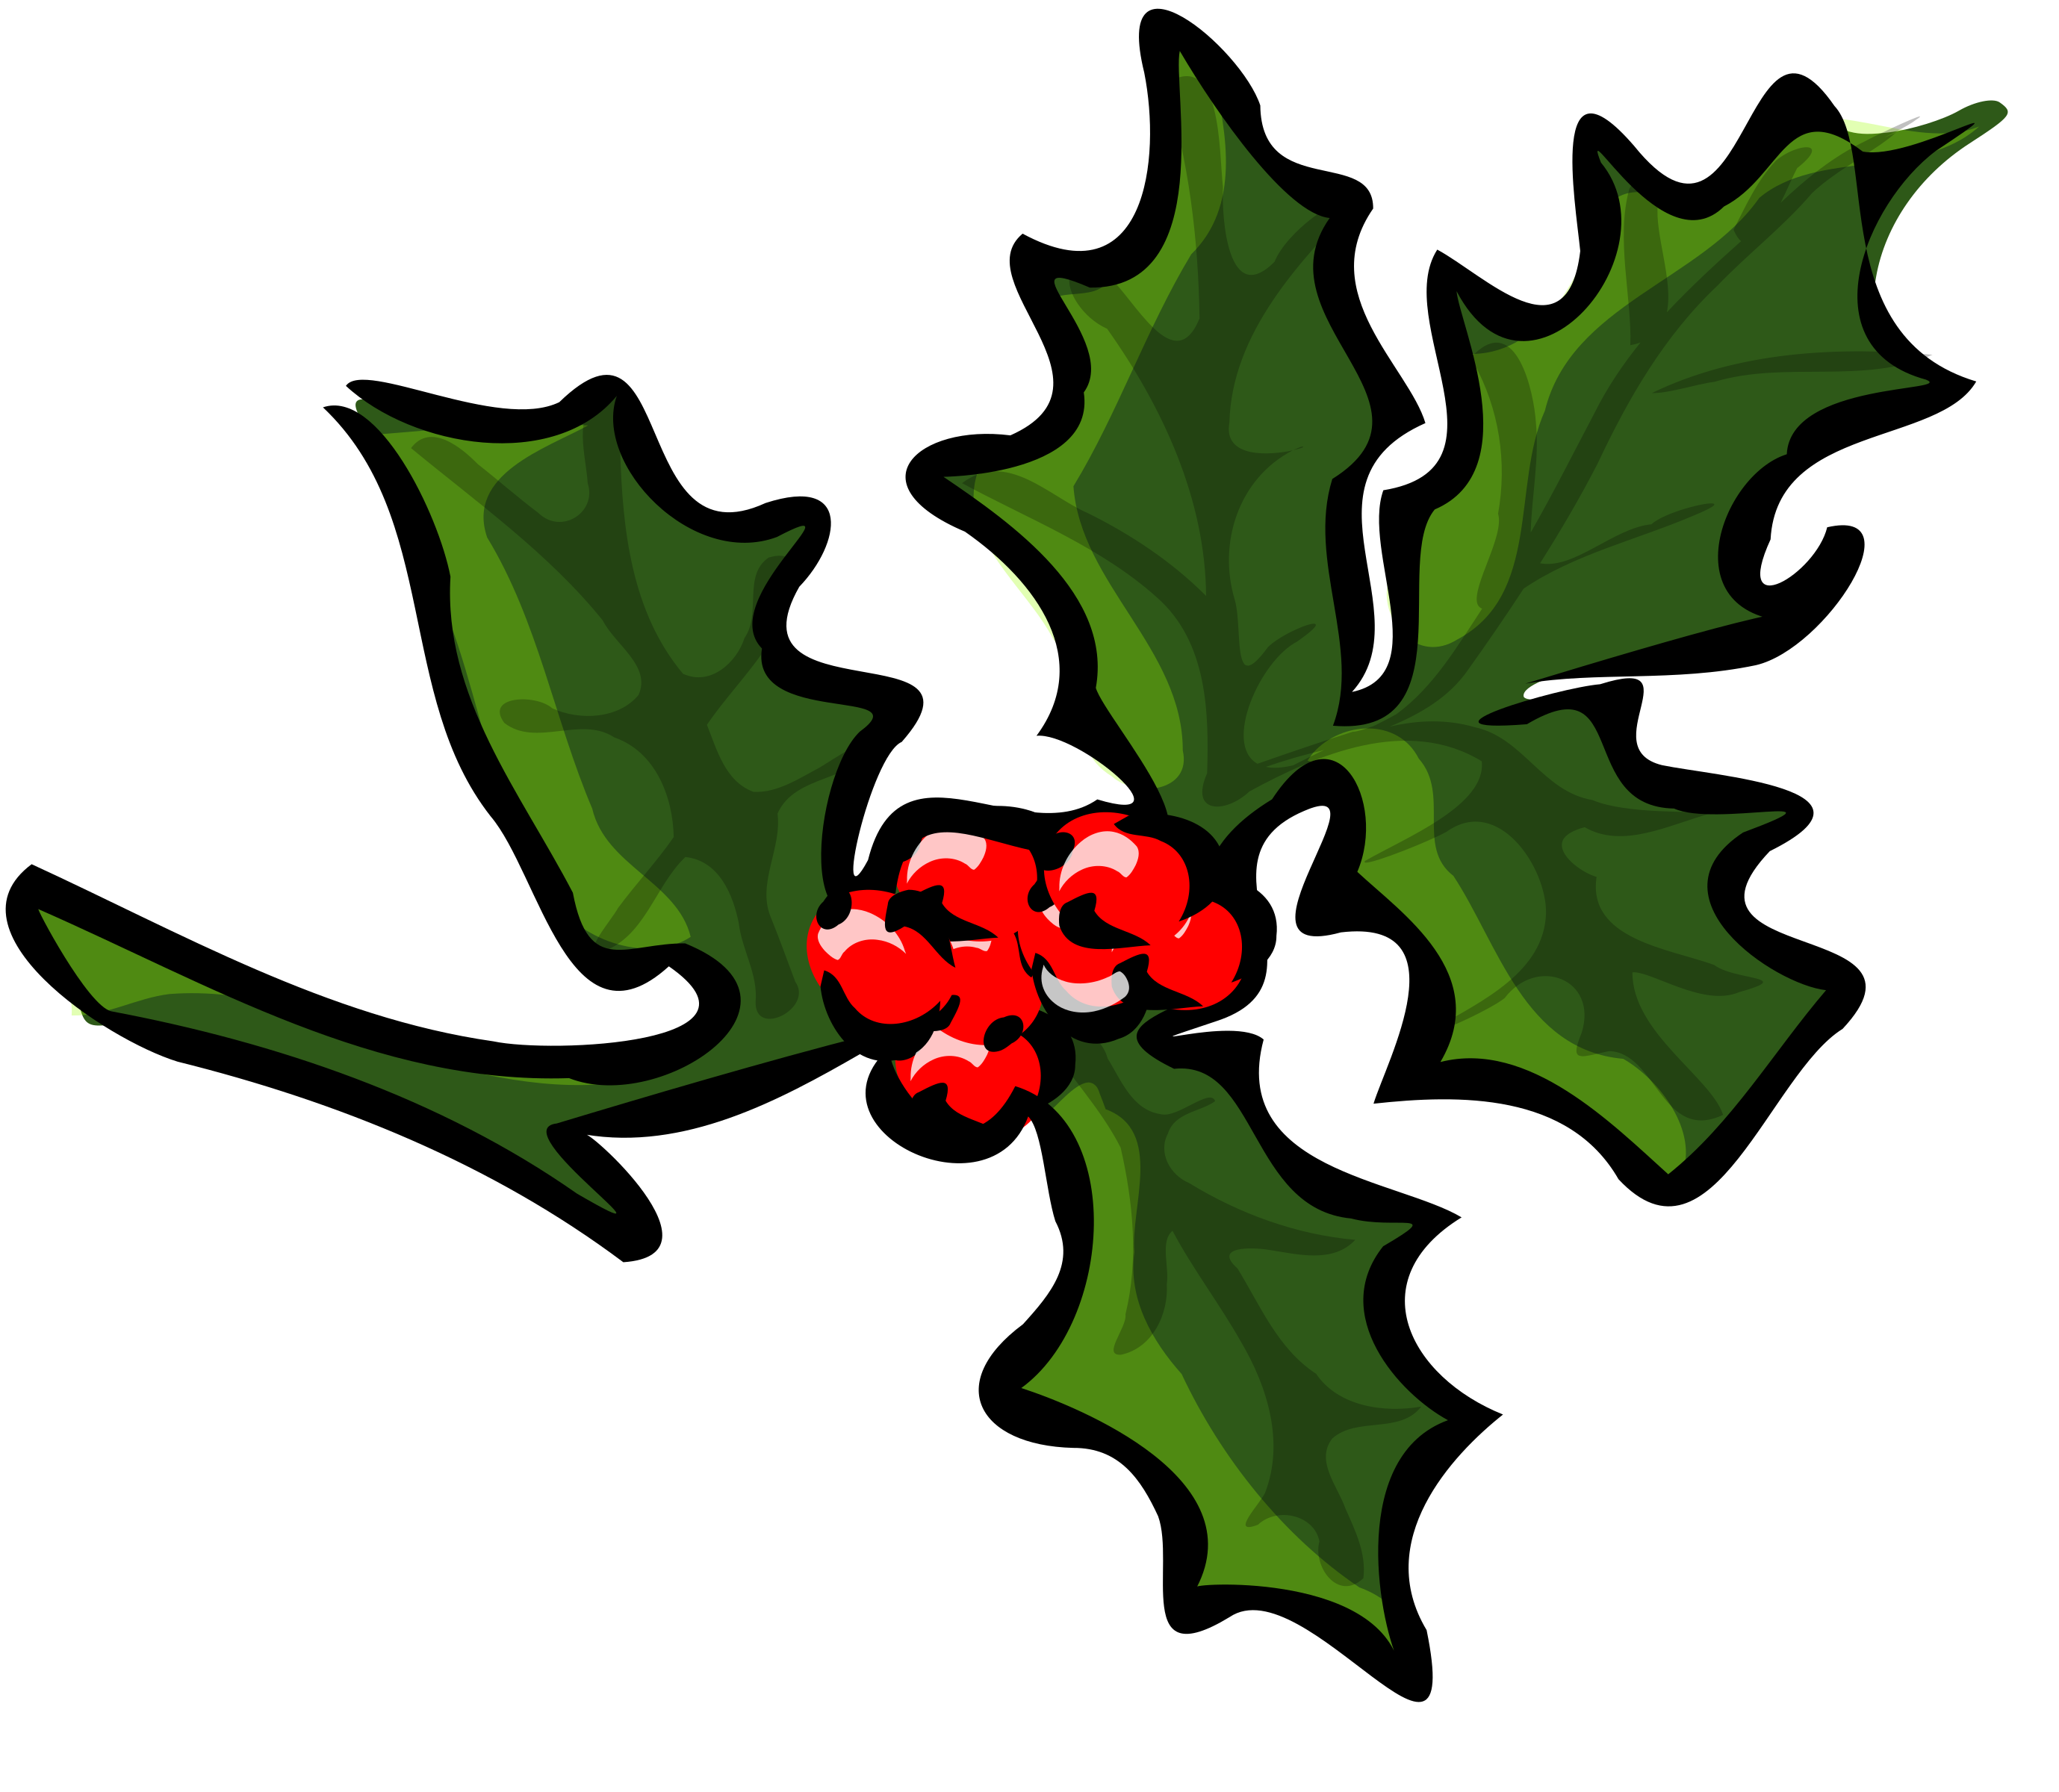 Holly Branch by TheresaKnott